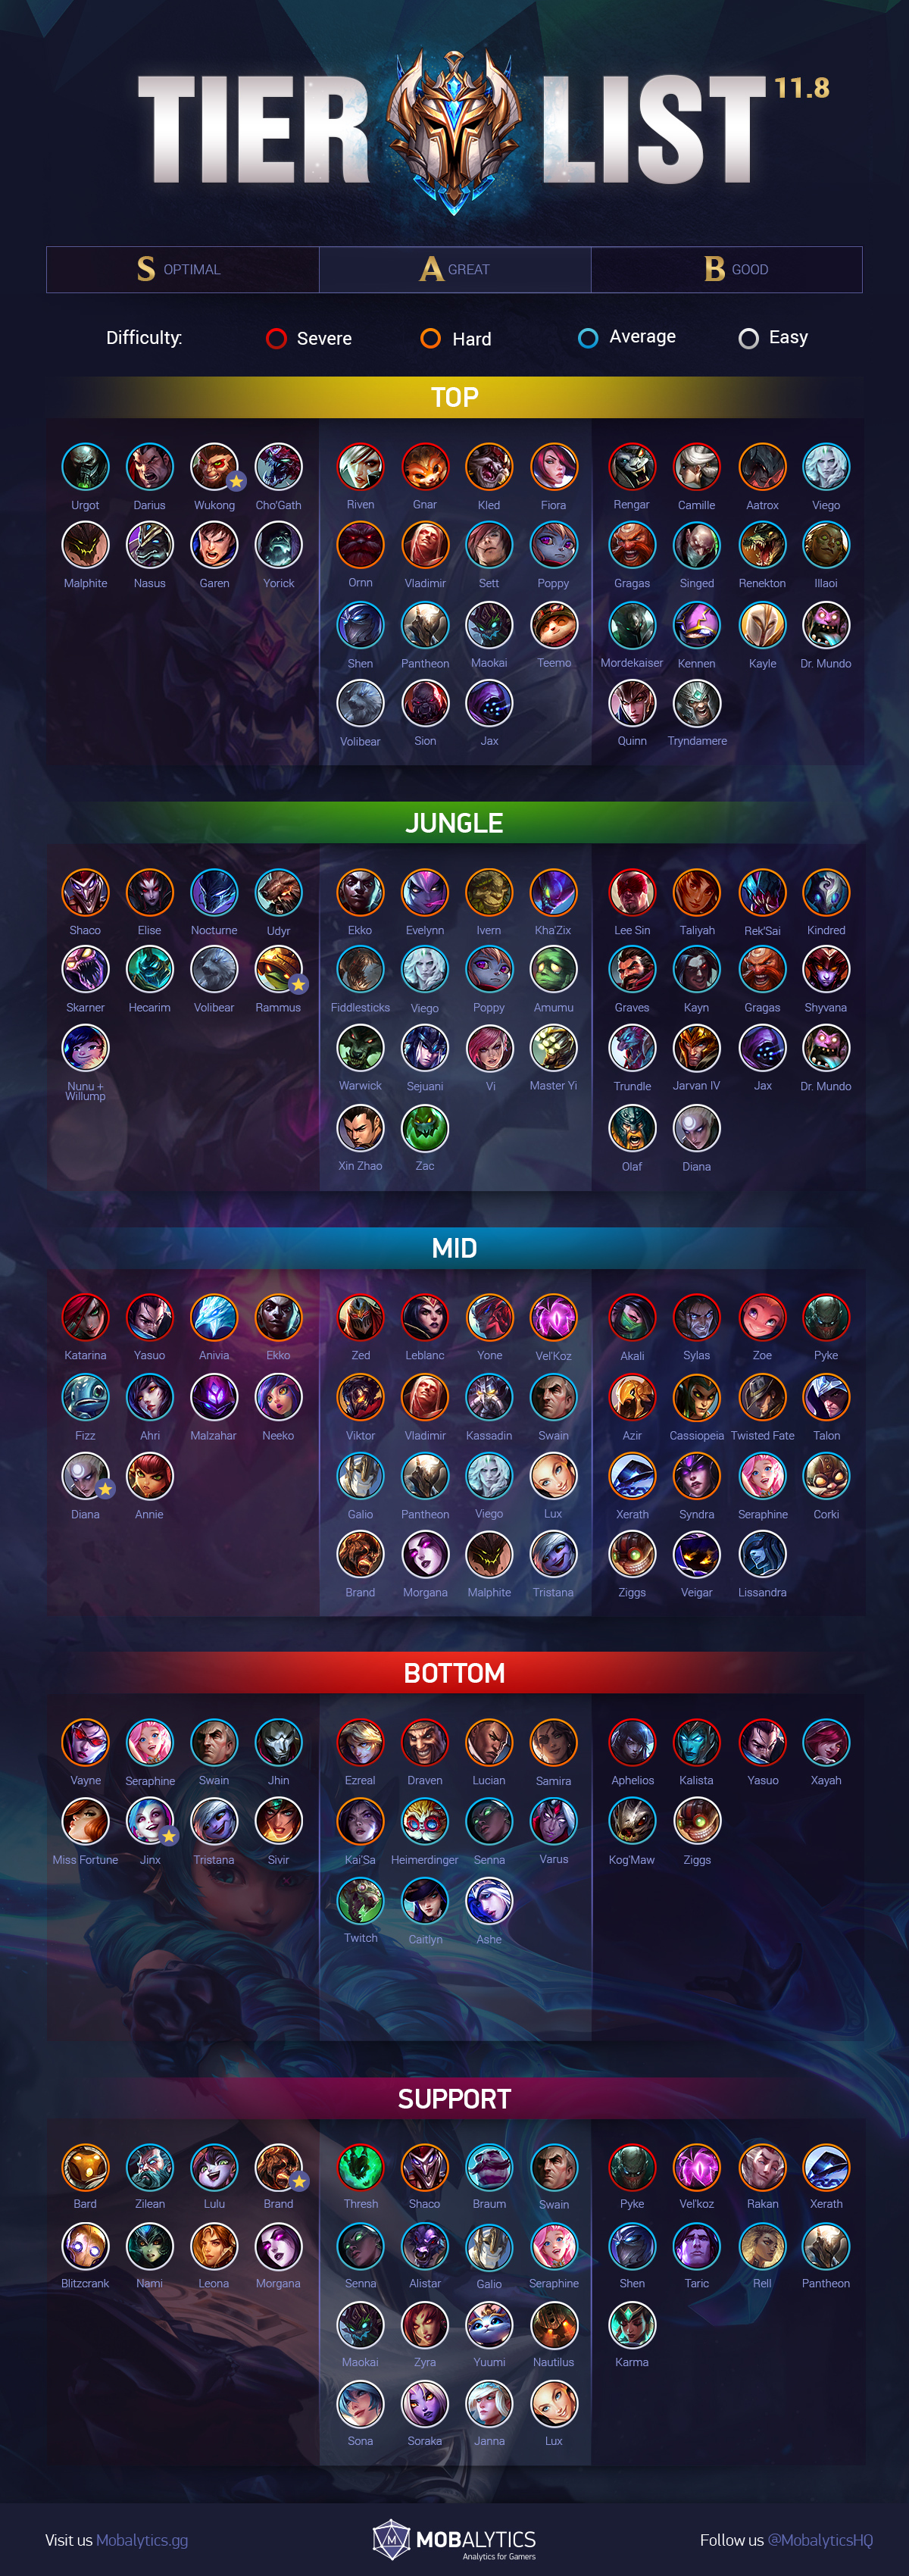 LoL Tier List Patch 11.8